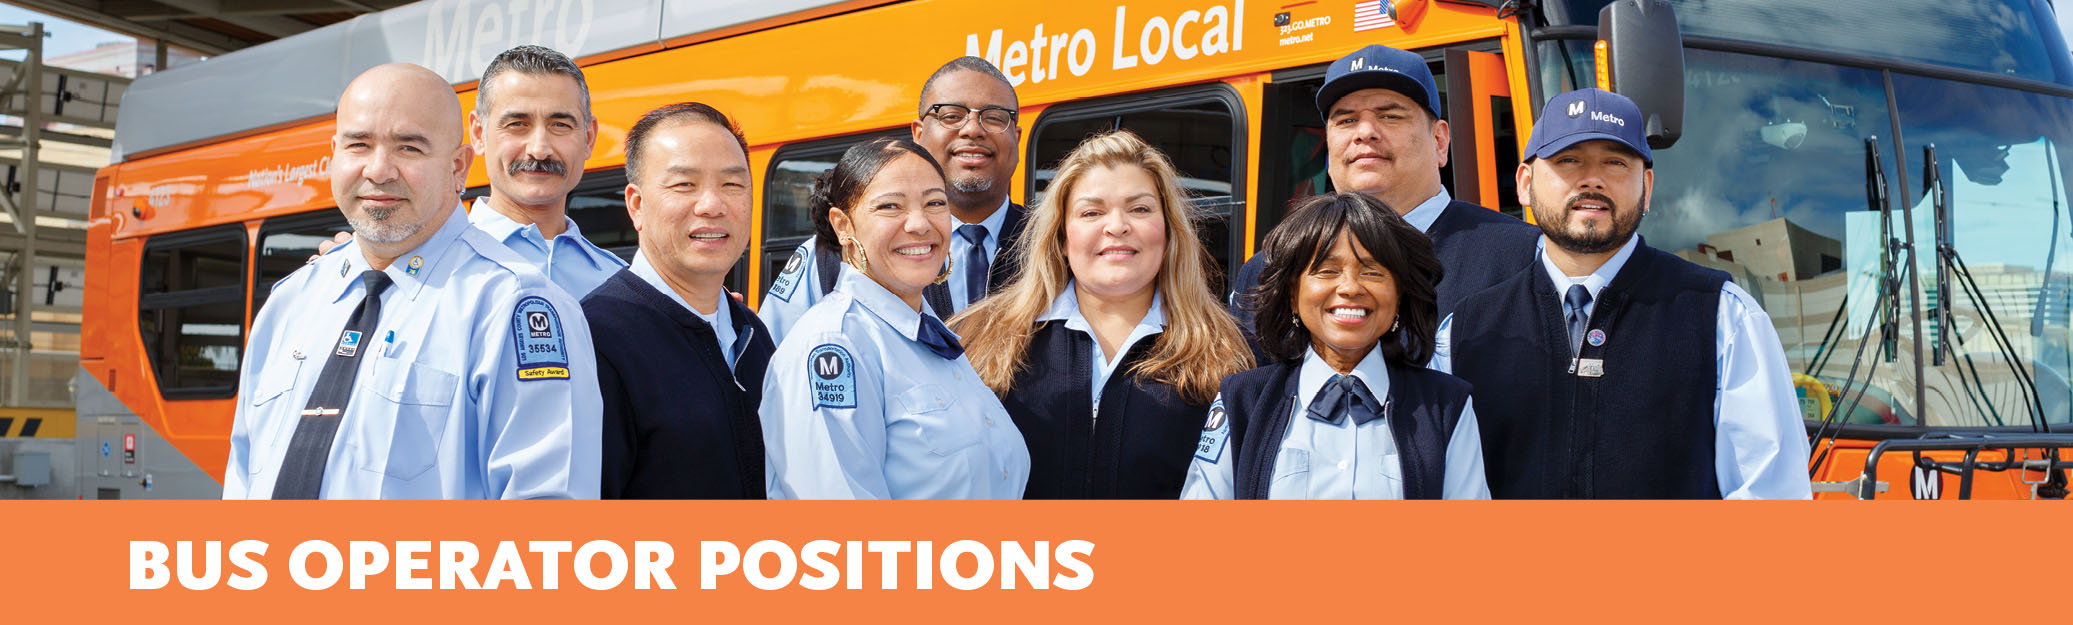 Bus Operator Positions